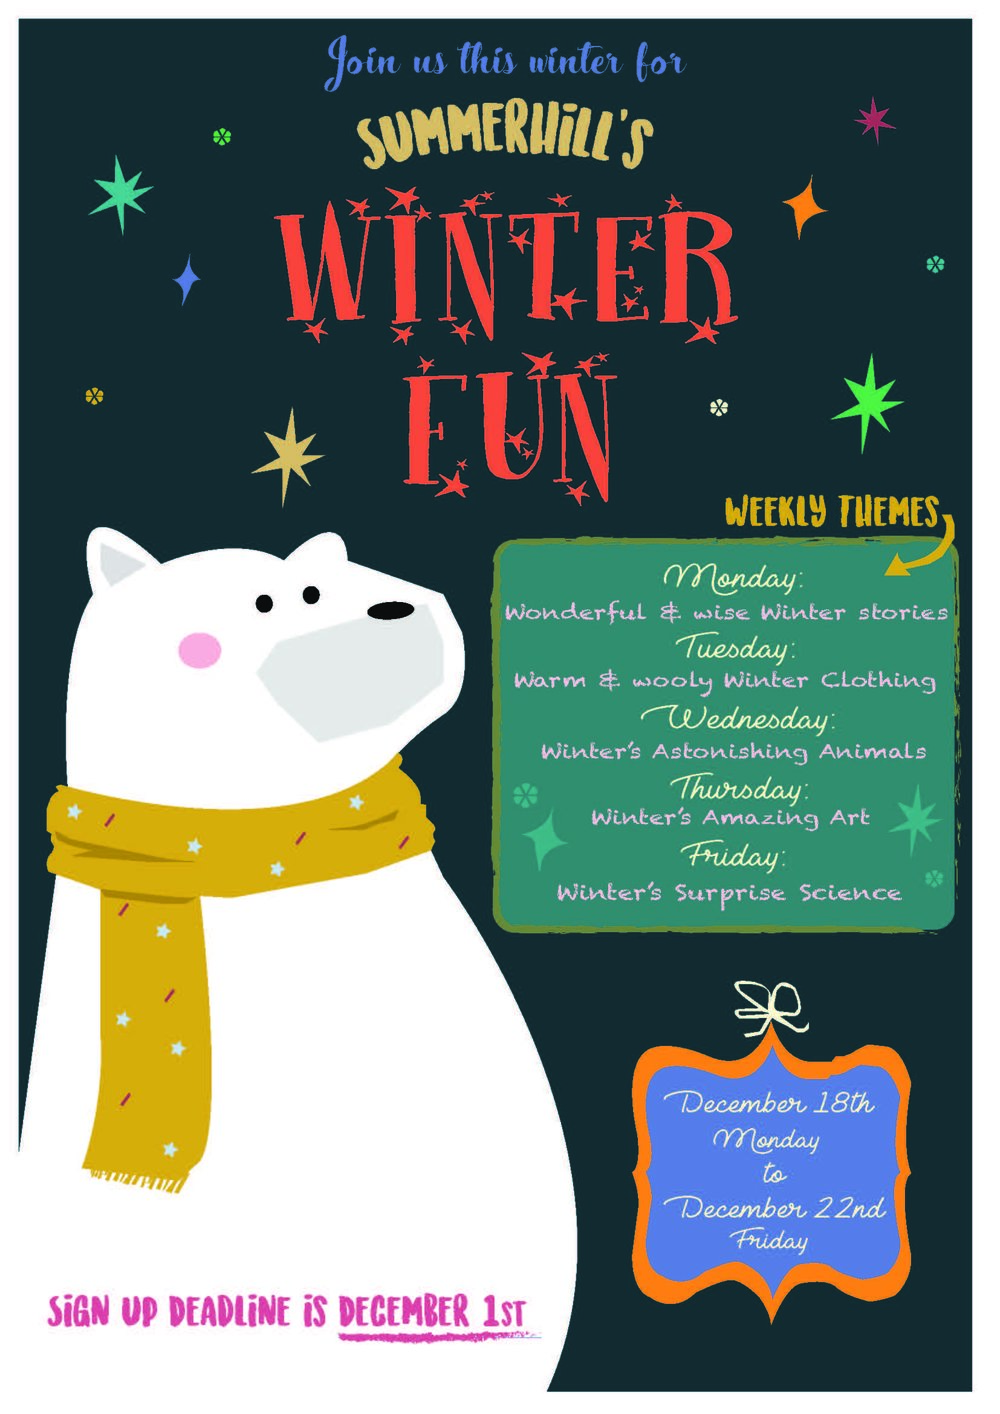 winter fun poster with themes.jpg